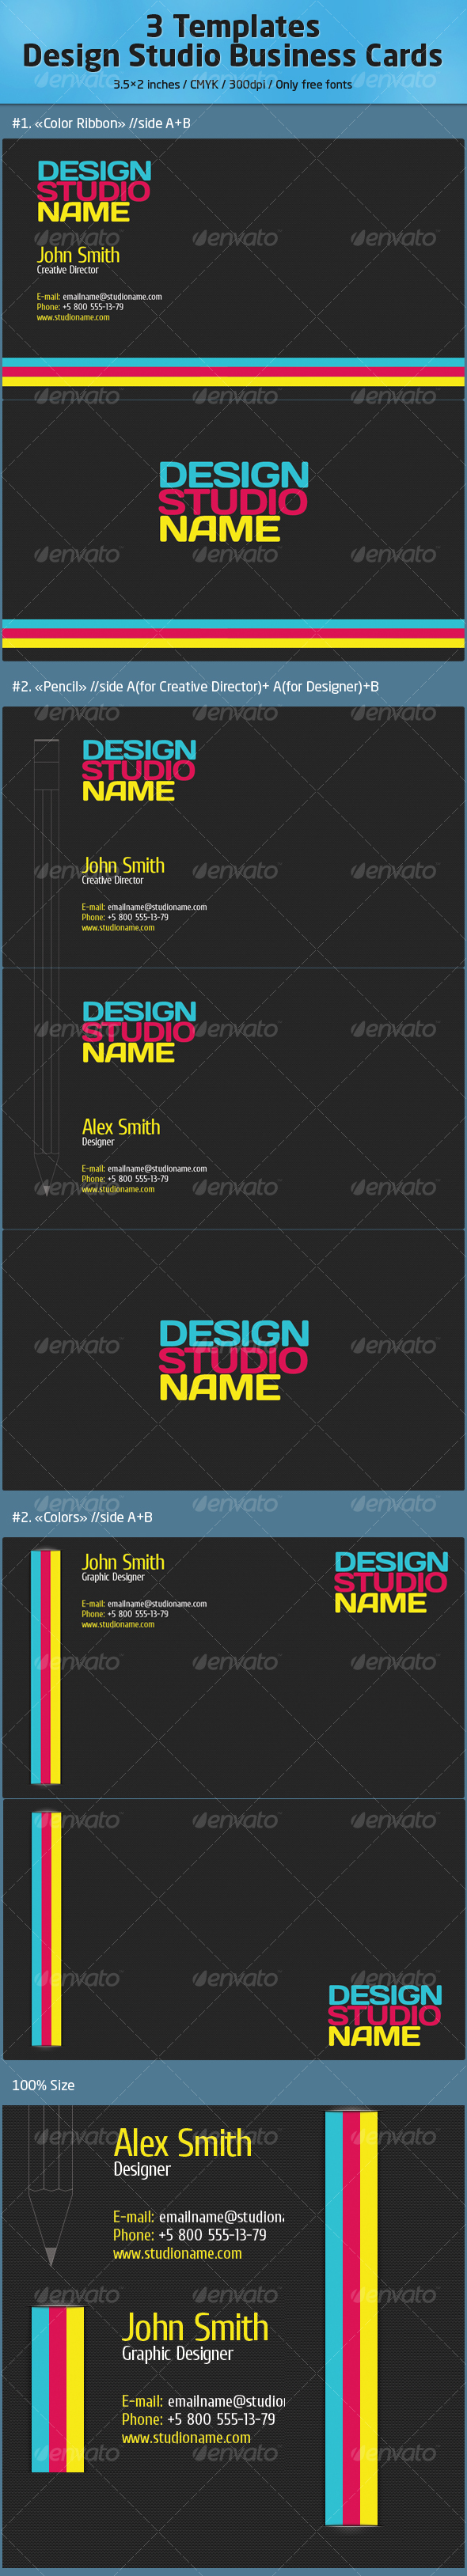 Design Studio Business Cards //Carbon - Corporate Business Cards